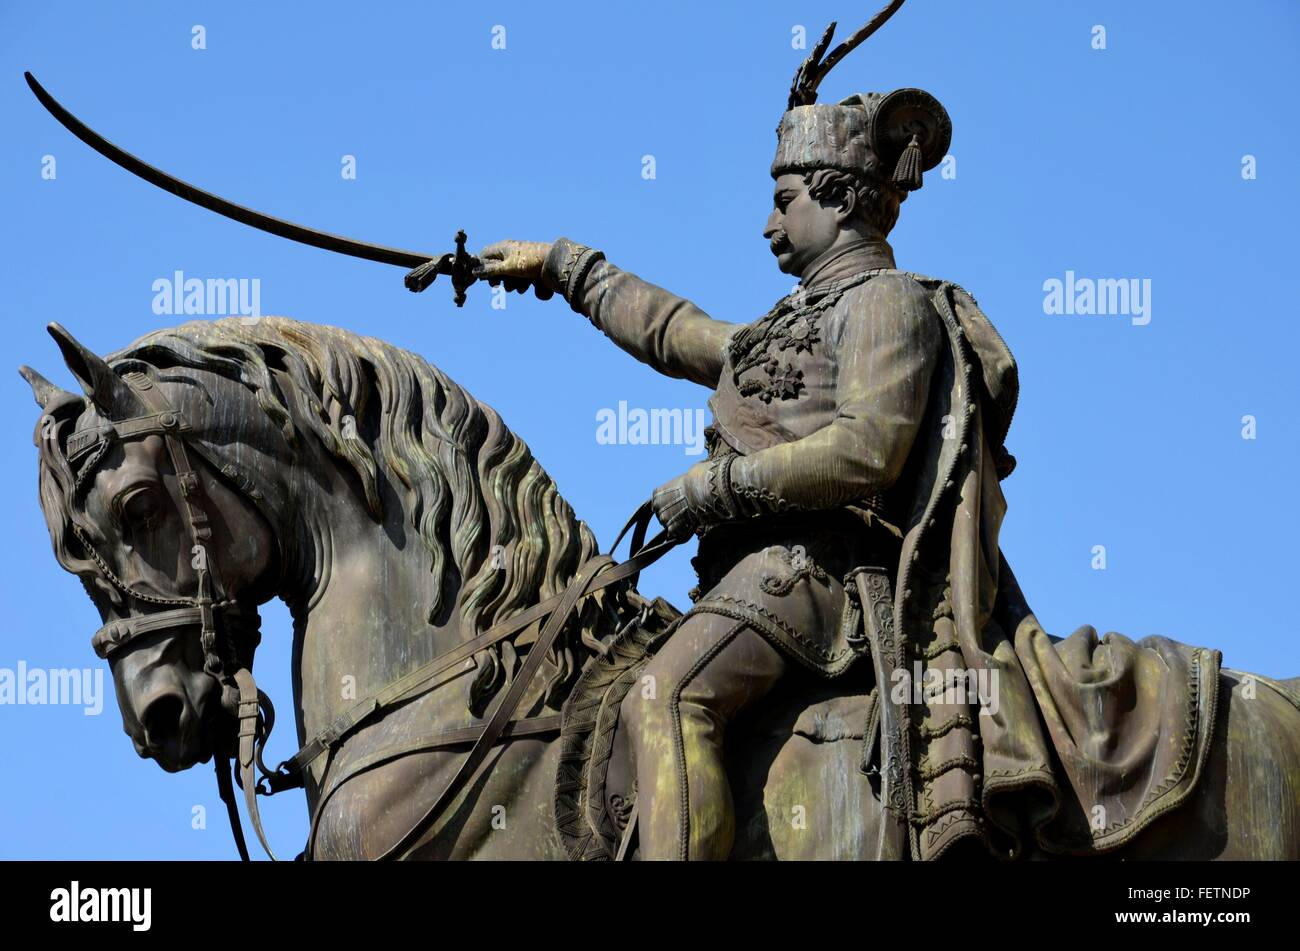 Statue of Croatian hero viceroy and military general Ban Josip Jelacic with sword on horse in Zagreb main square - Stock Image